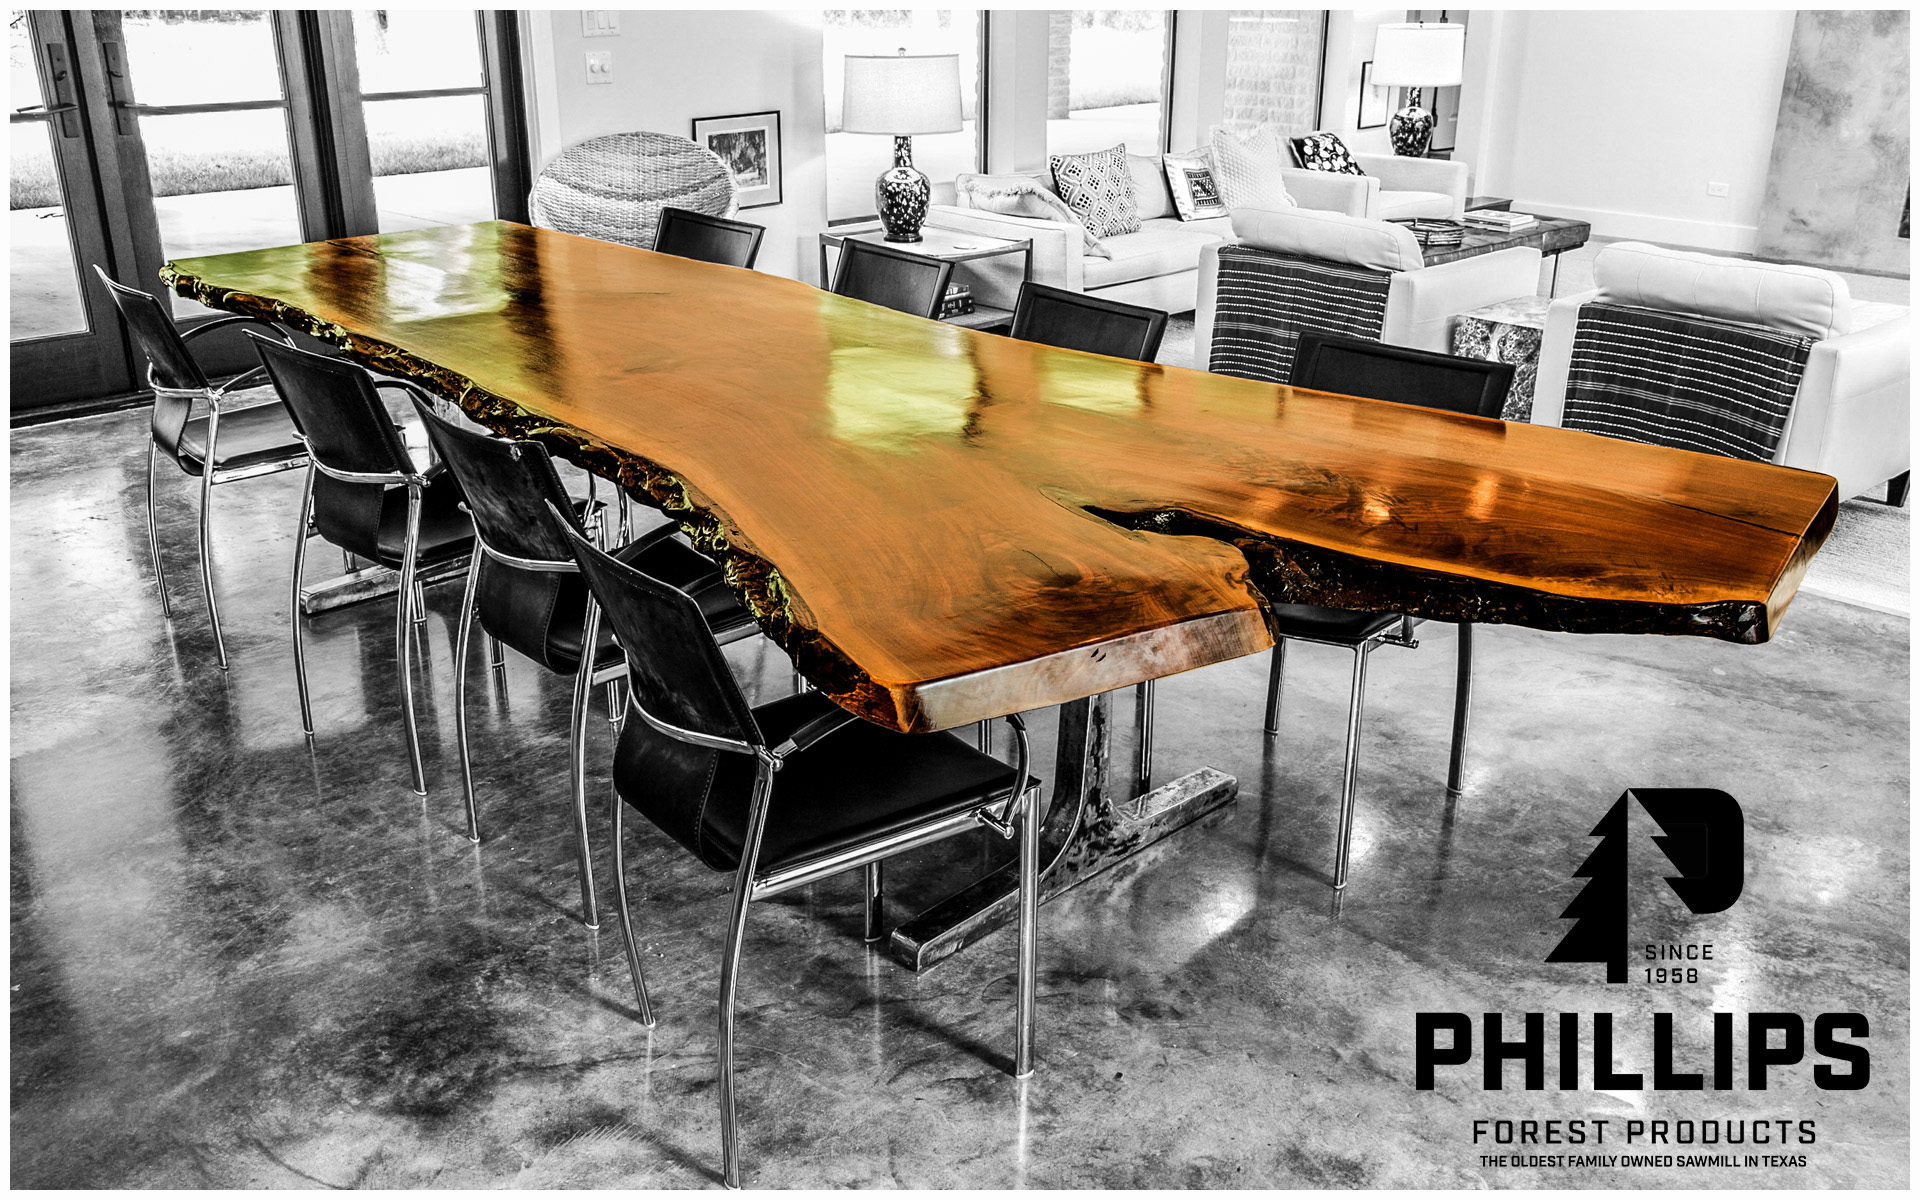 phillips forest products